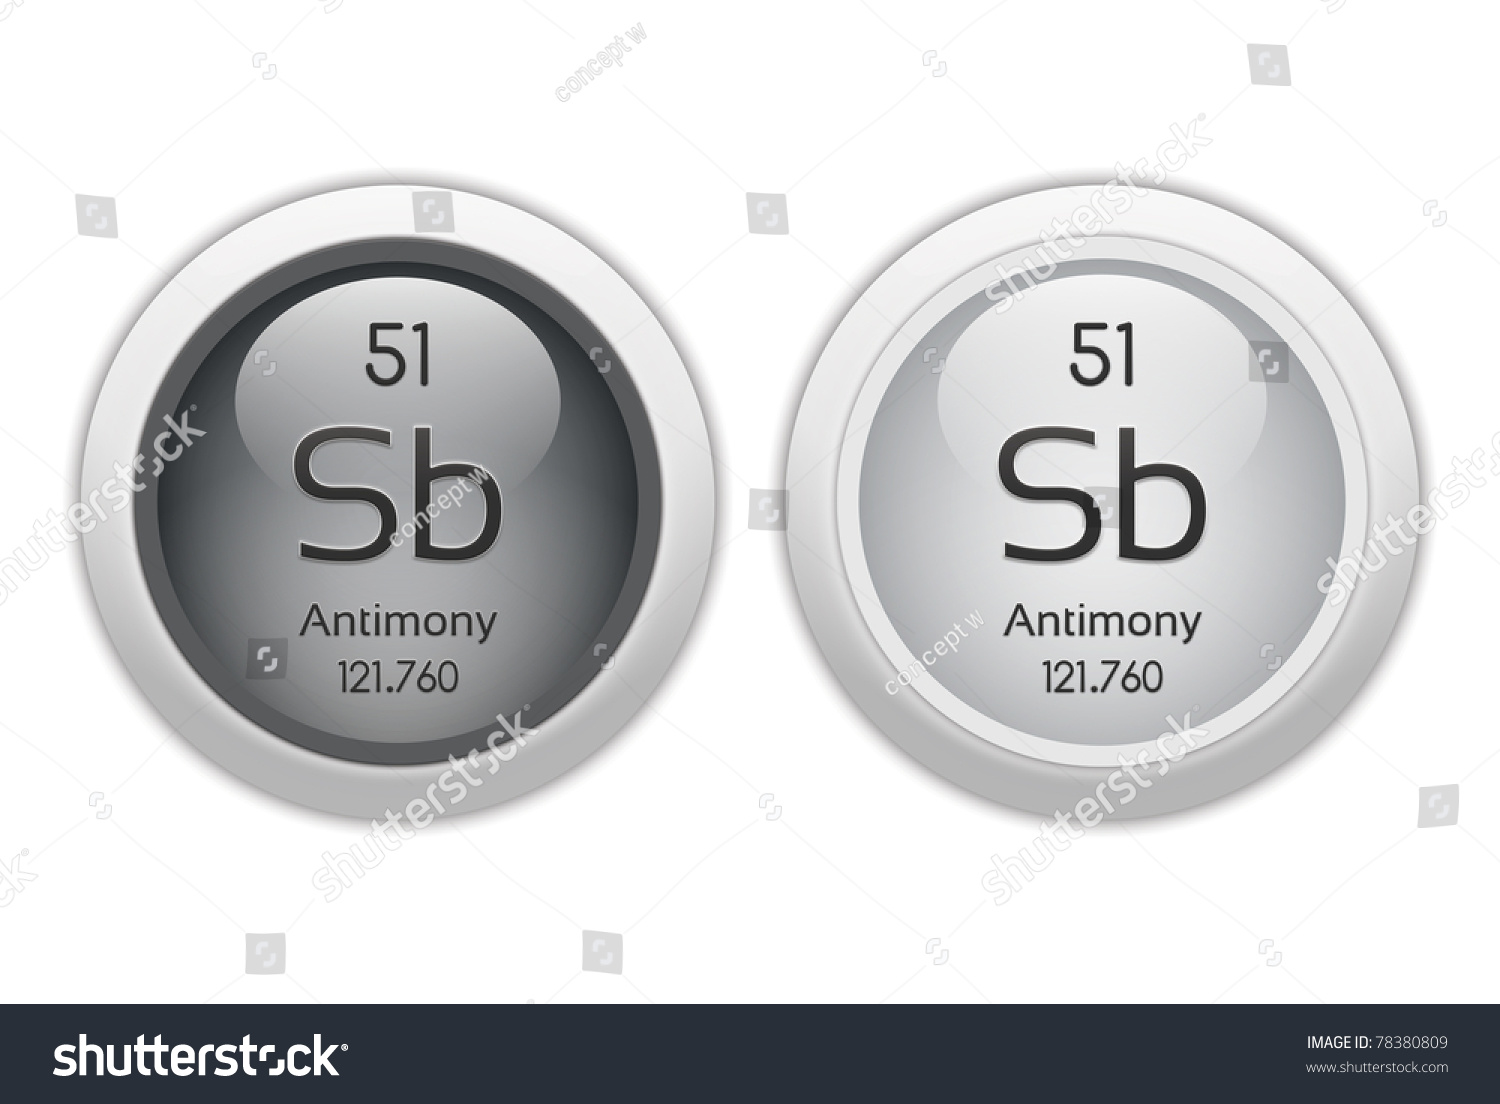 Antimony two web buttons chemical element stock illustration antimony two web buttons chemical element with atomic number 51 it is represented biocorpaavc Images